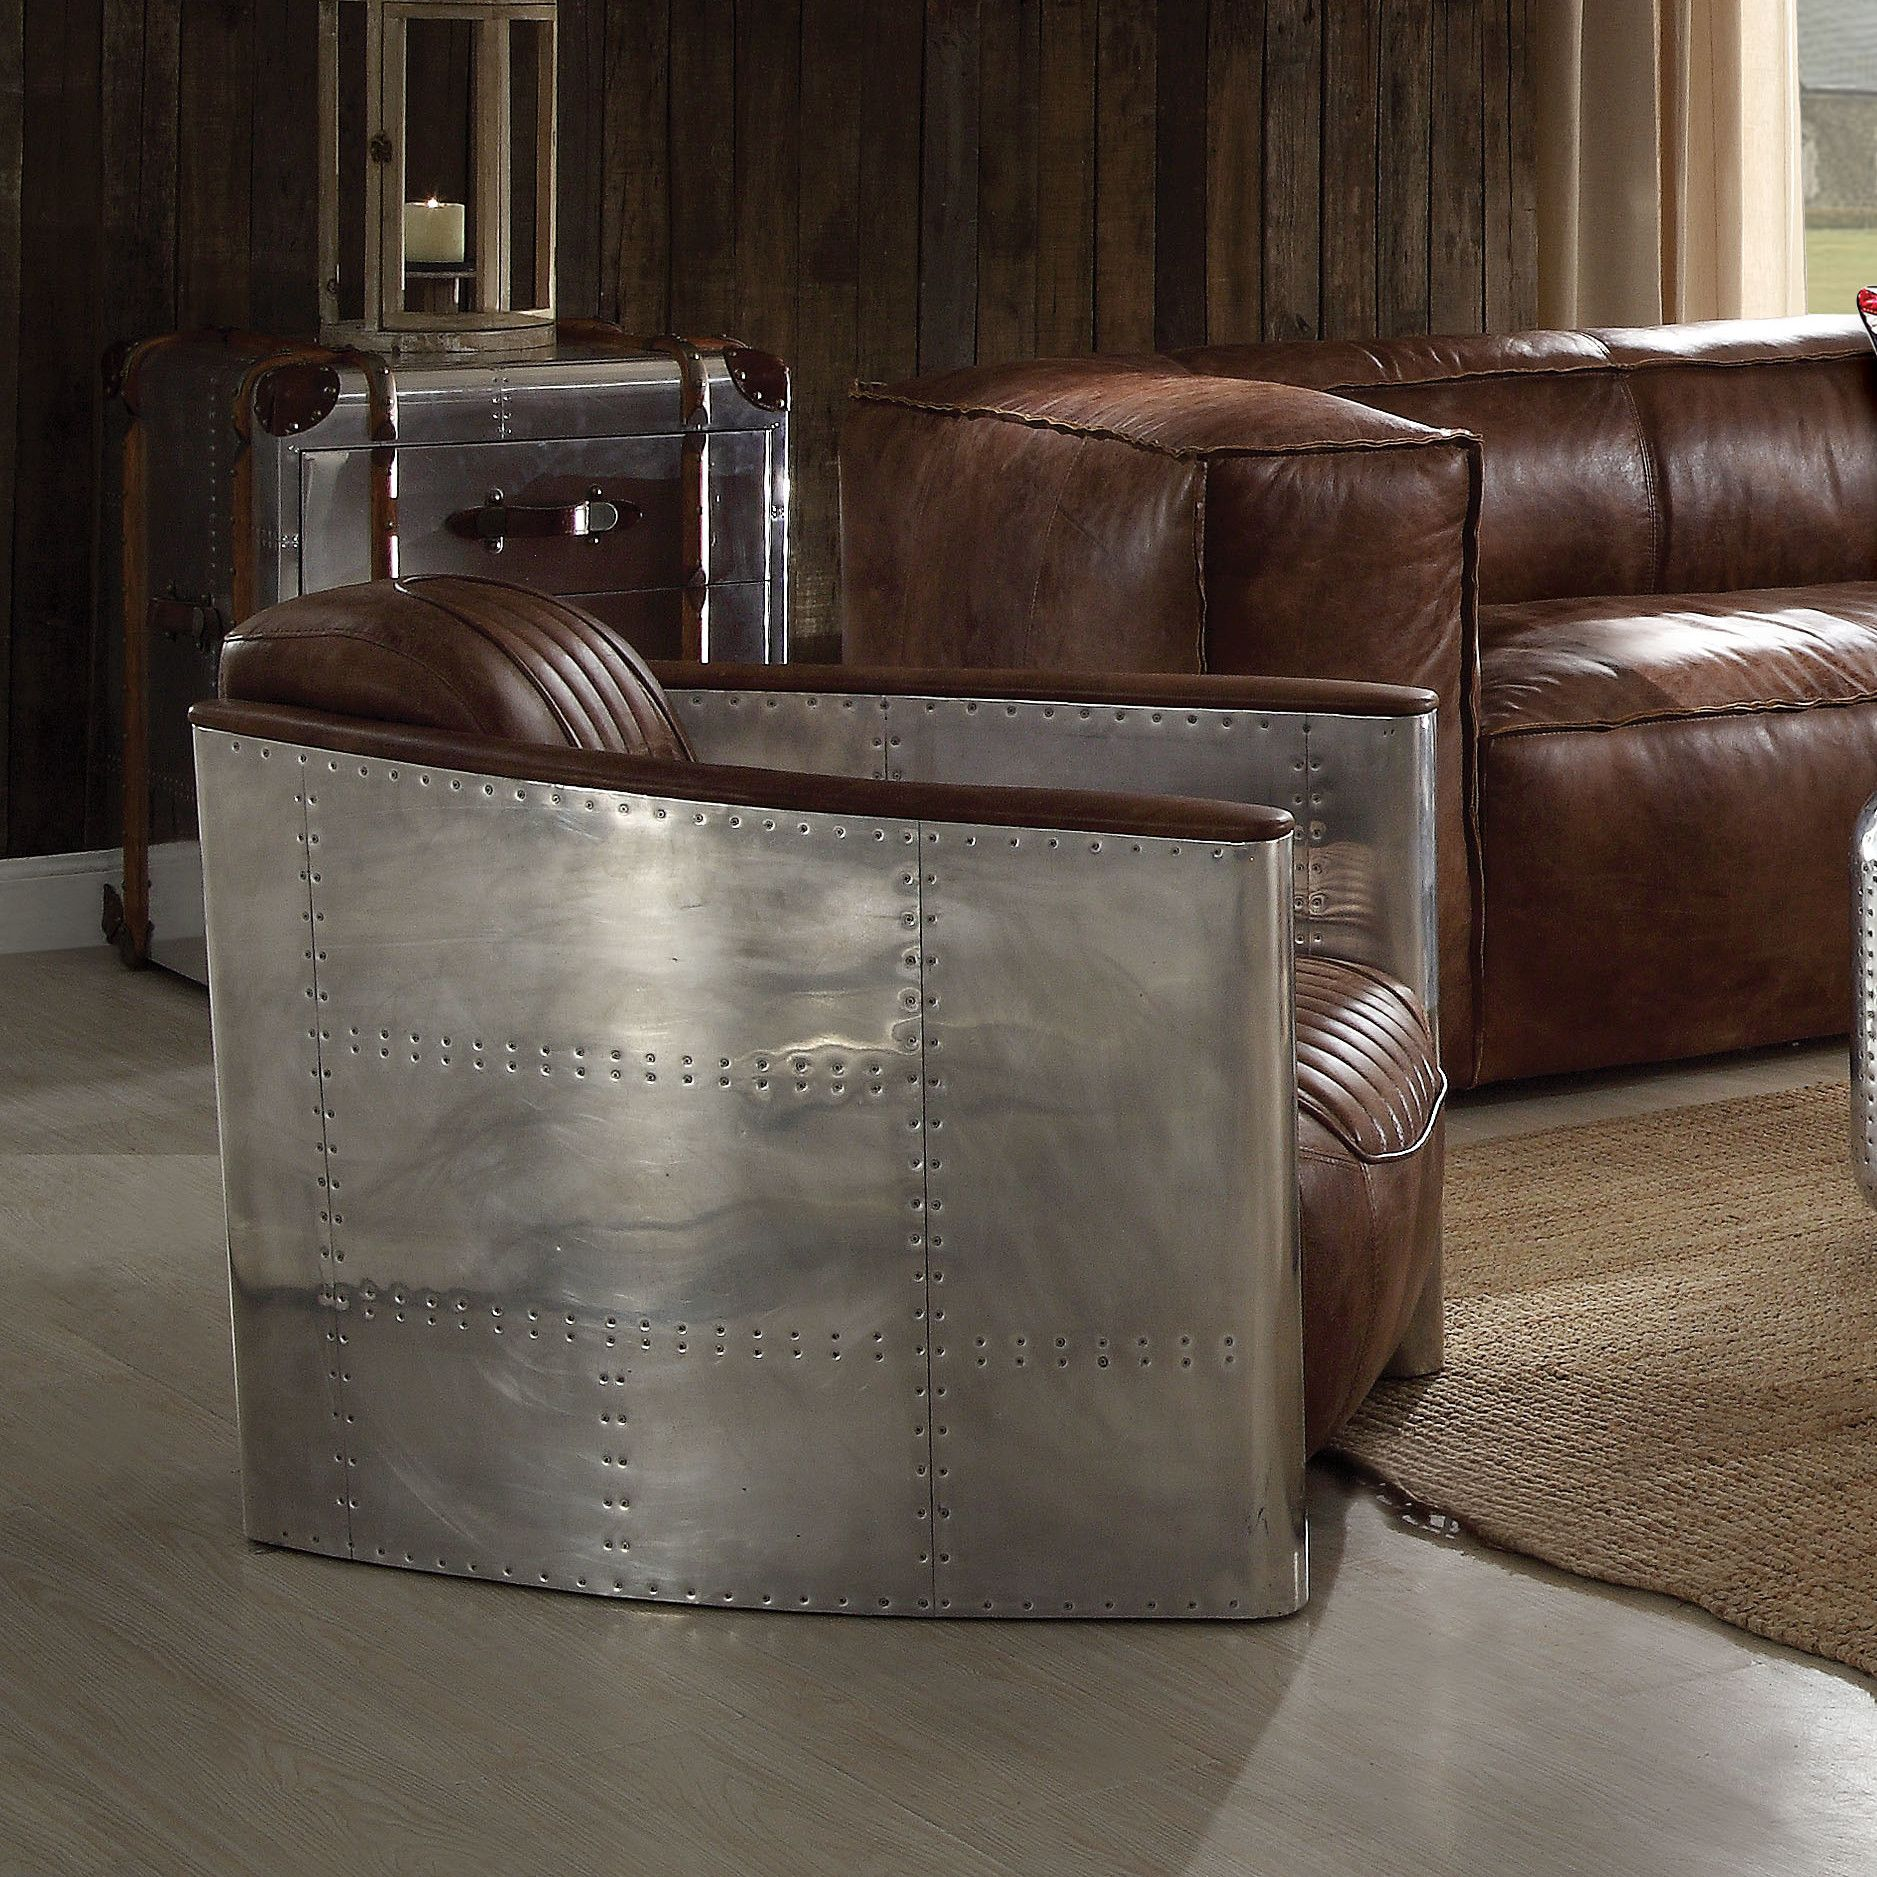 Cool Brancaster Barrel Chair Products Accent Chairs Leather Machost Co Dining Chair Design Ideas Machostcouk